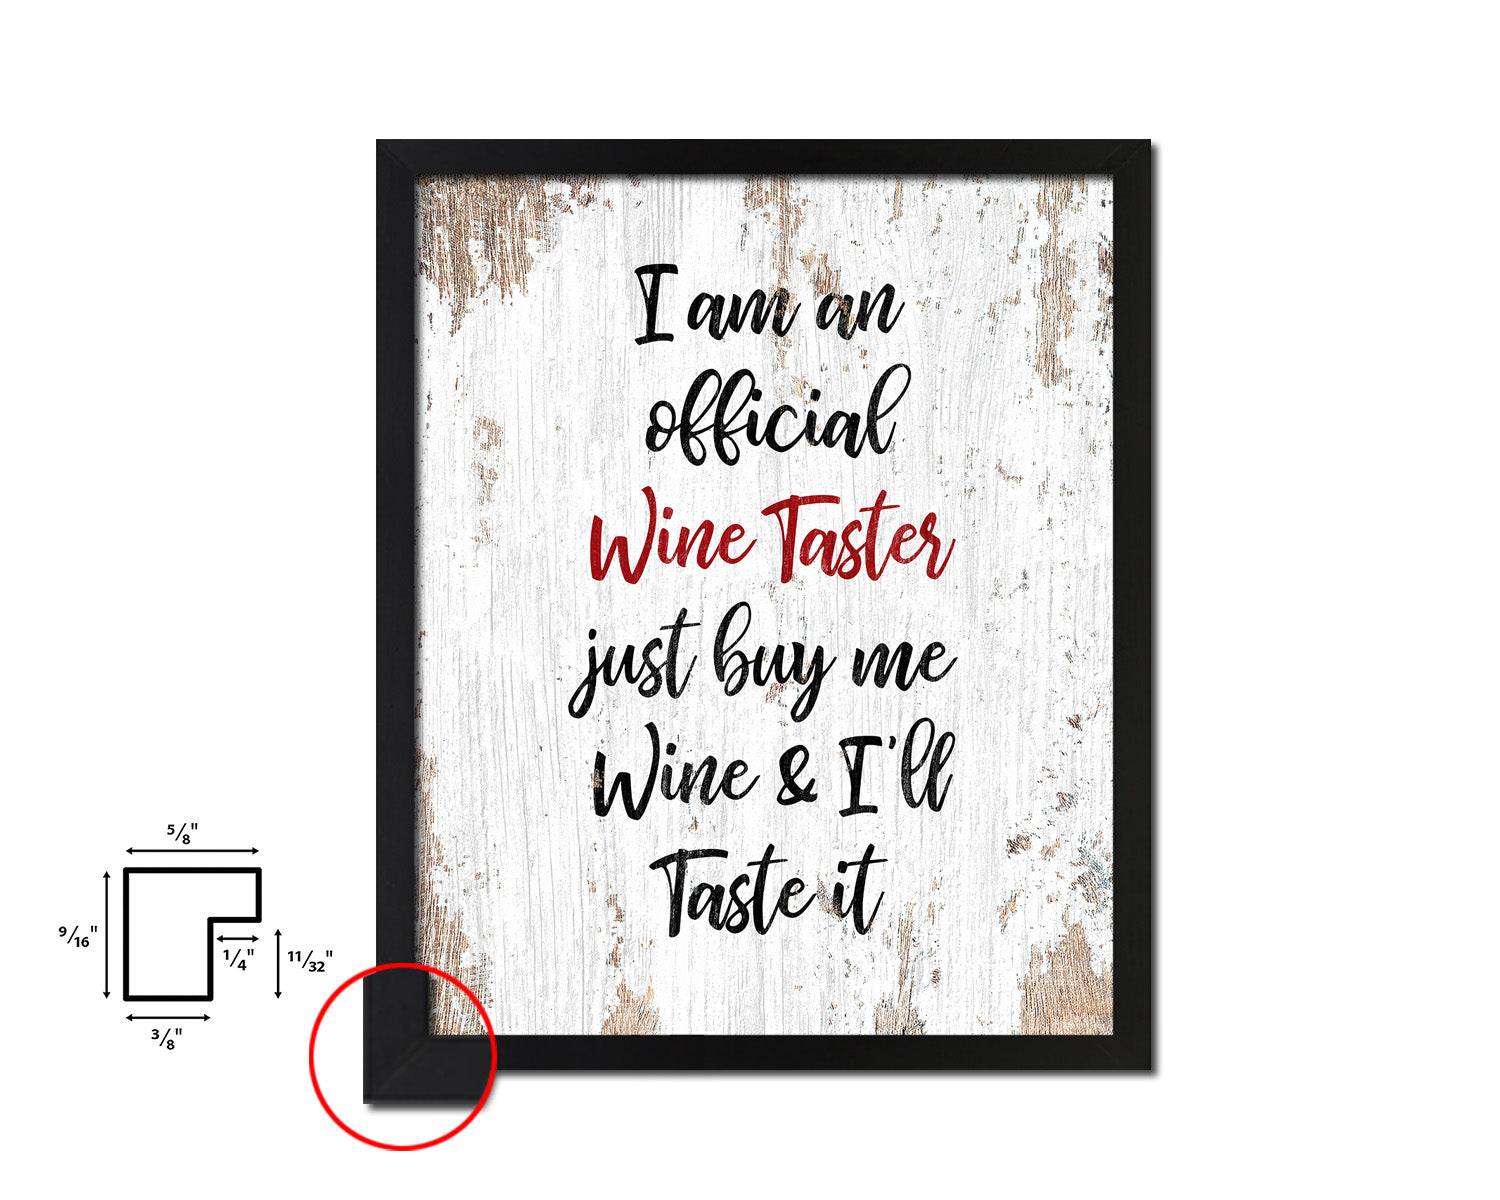 I am an official wine taster Framed Artwork Print Wall Decor Art Gifts